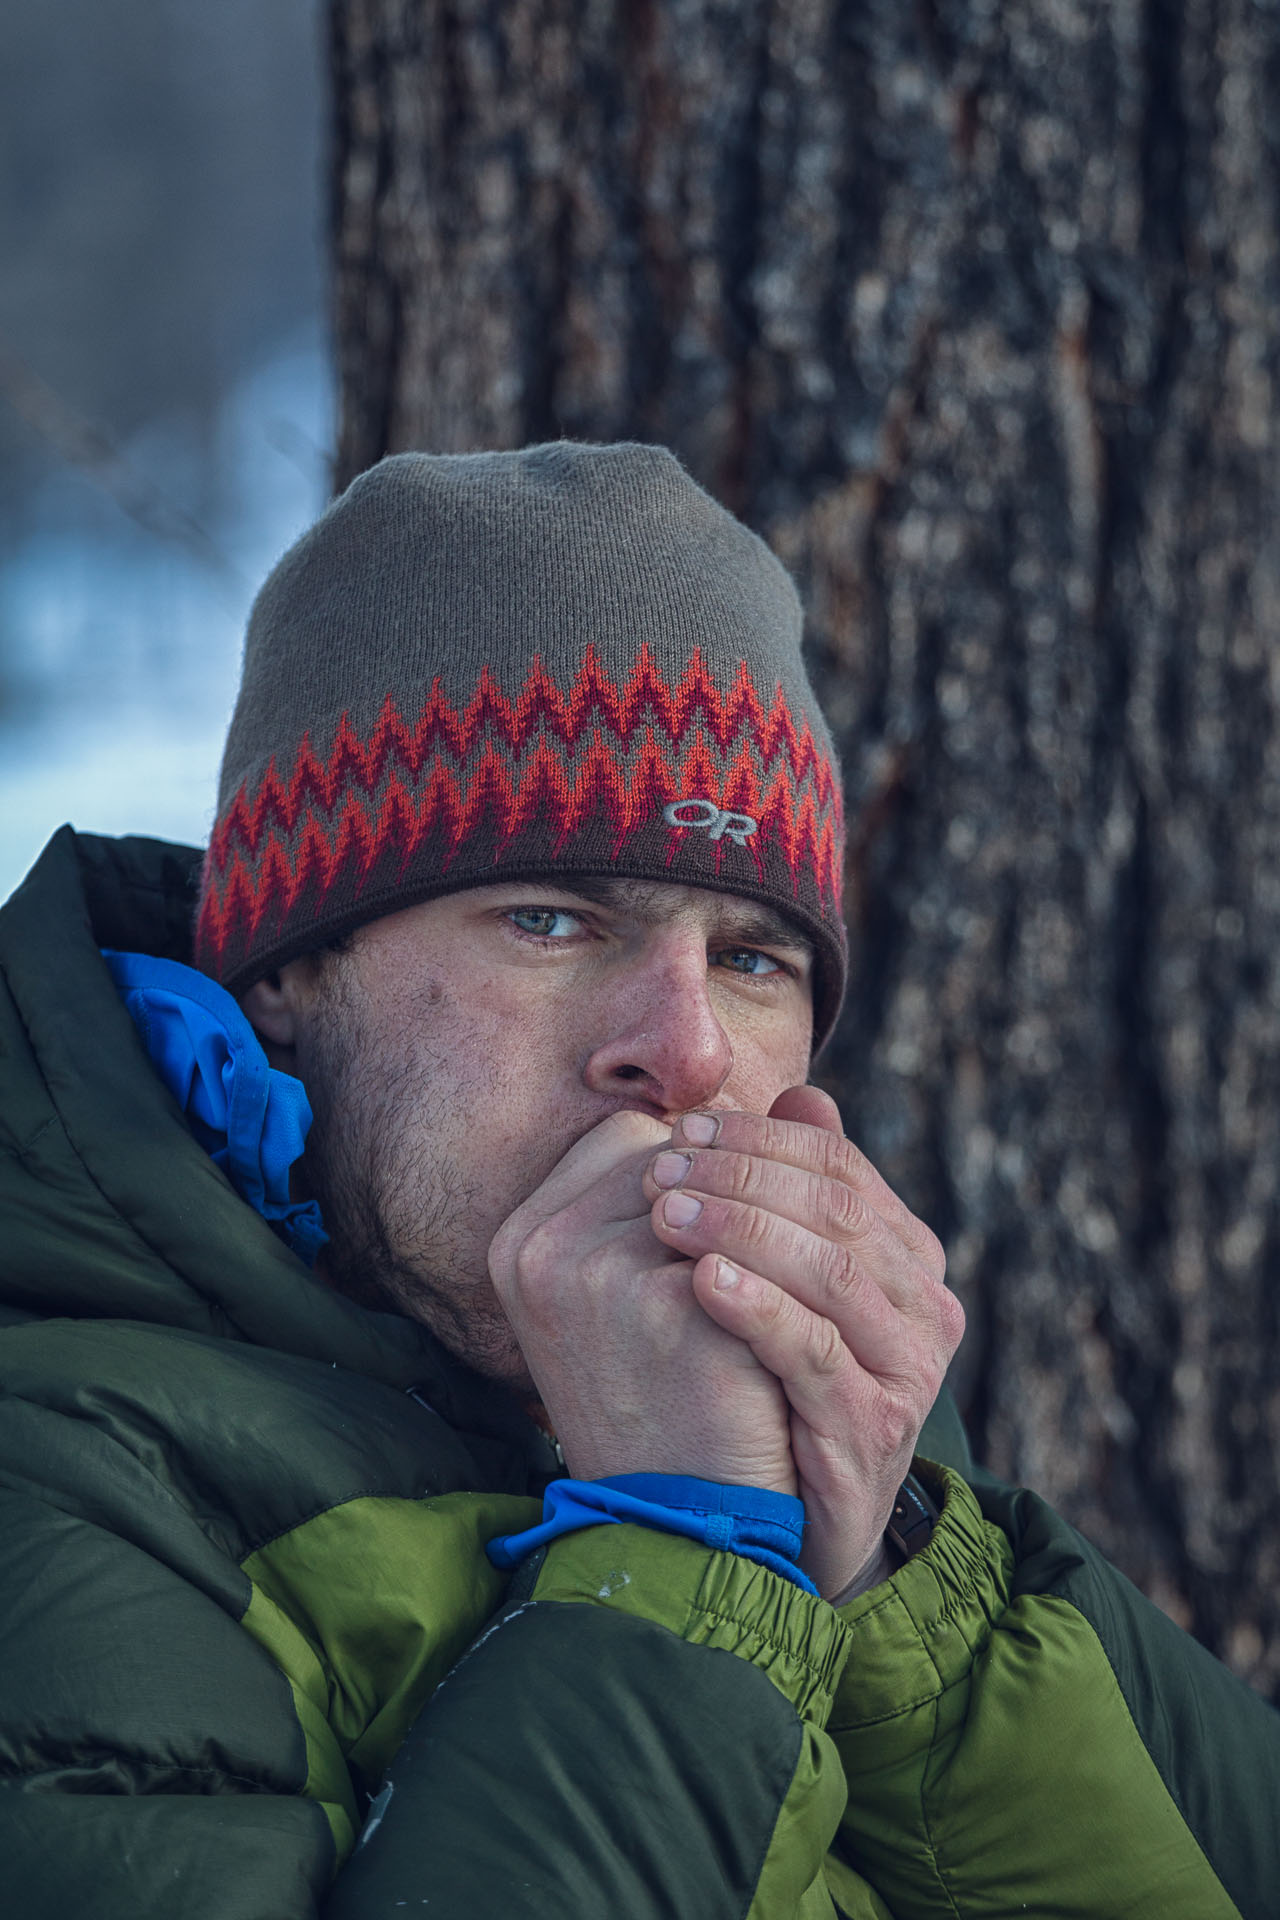 Gregg Treinish pauses from lacing his boots to warm his fingers on a frigid morning.